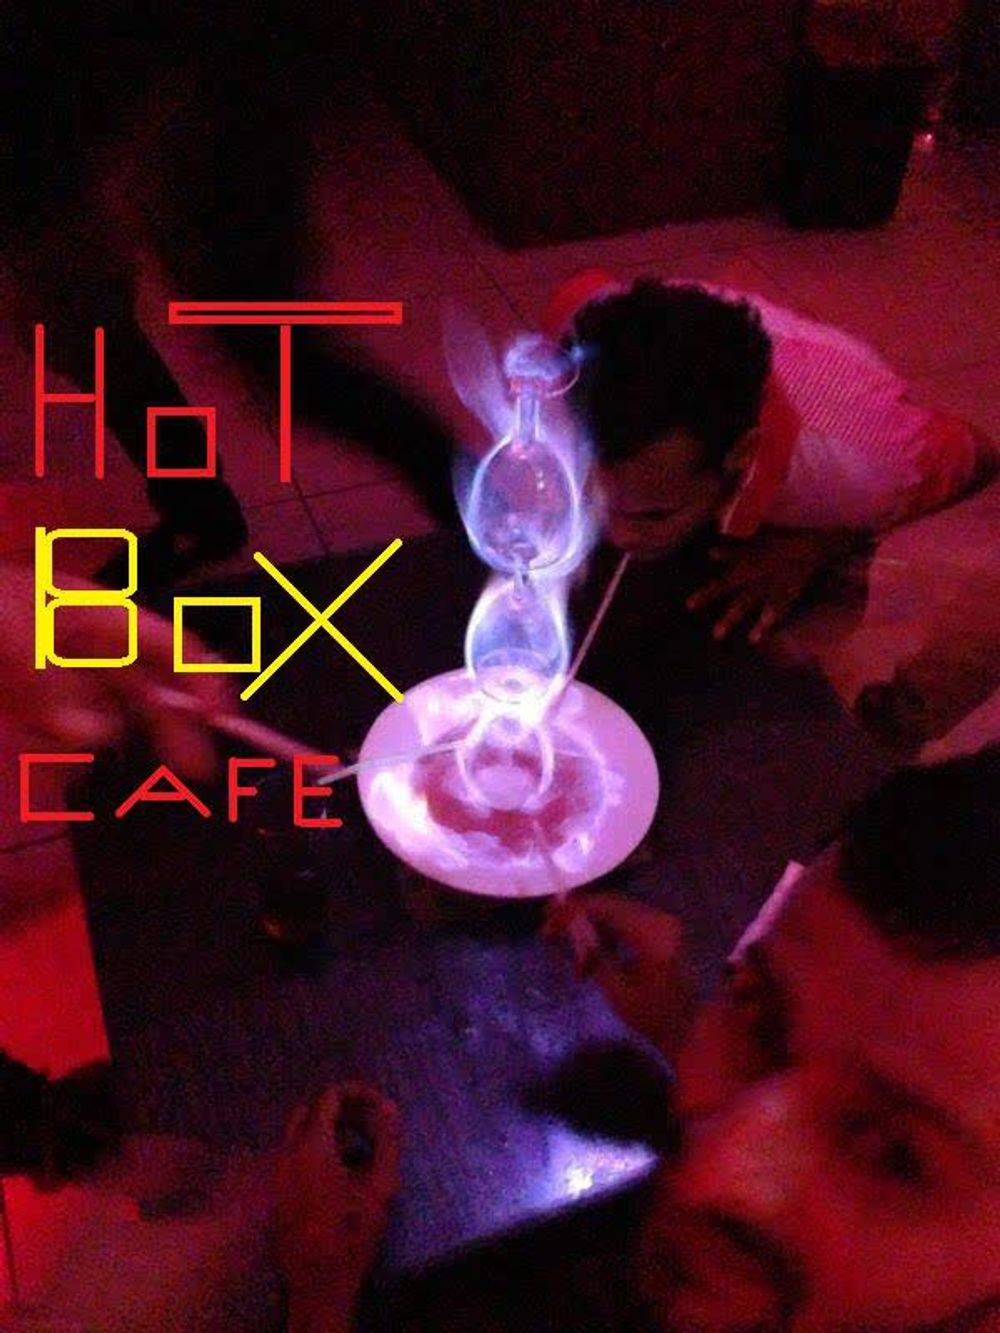 title: The Hot Box Cafe